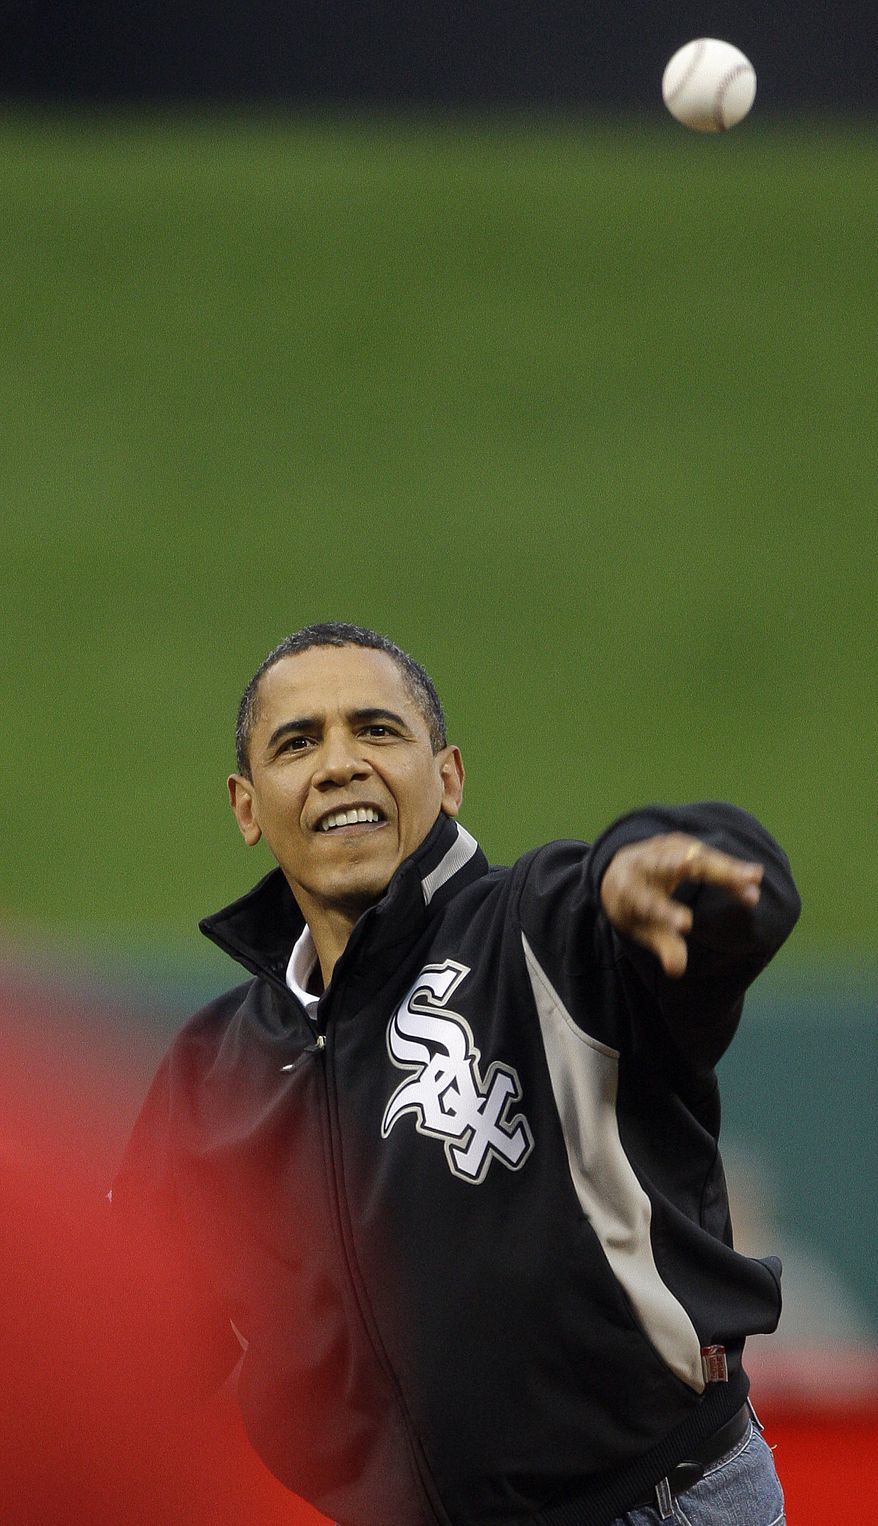 President Barack Obama throws out the ceremonial first pitch during the first inning of the MLB All-Star baseball game in St. Louis, Tuesday, July 14, 2009. (AP Photo/Morry Gash)